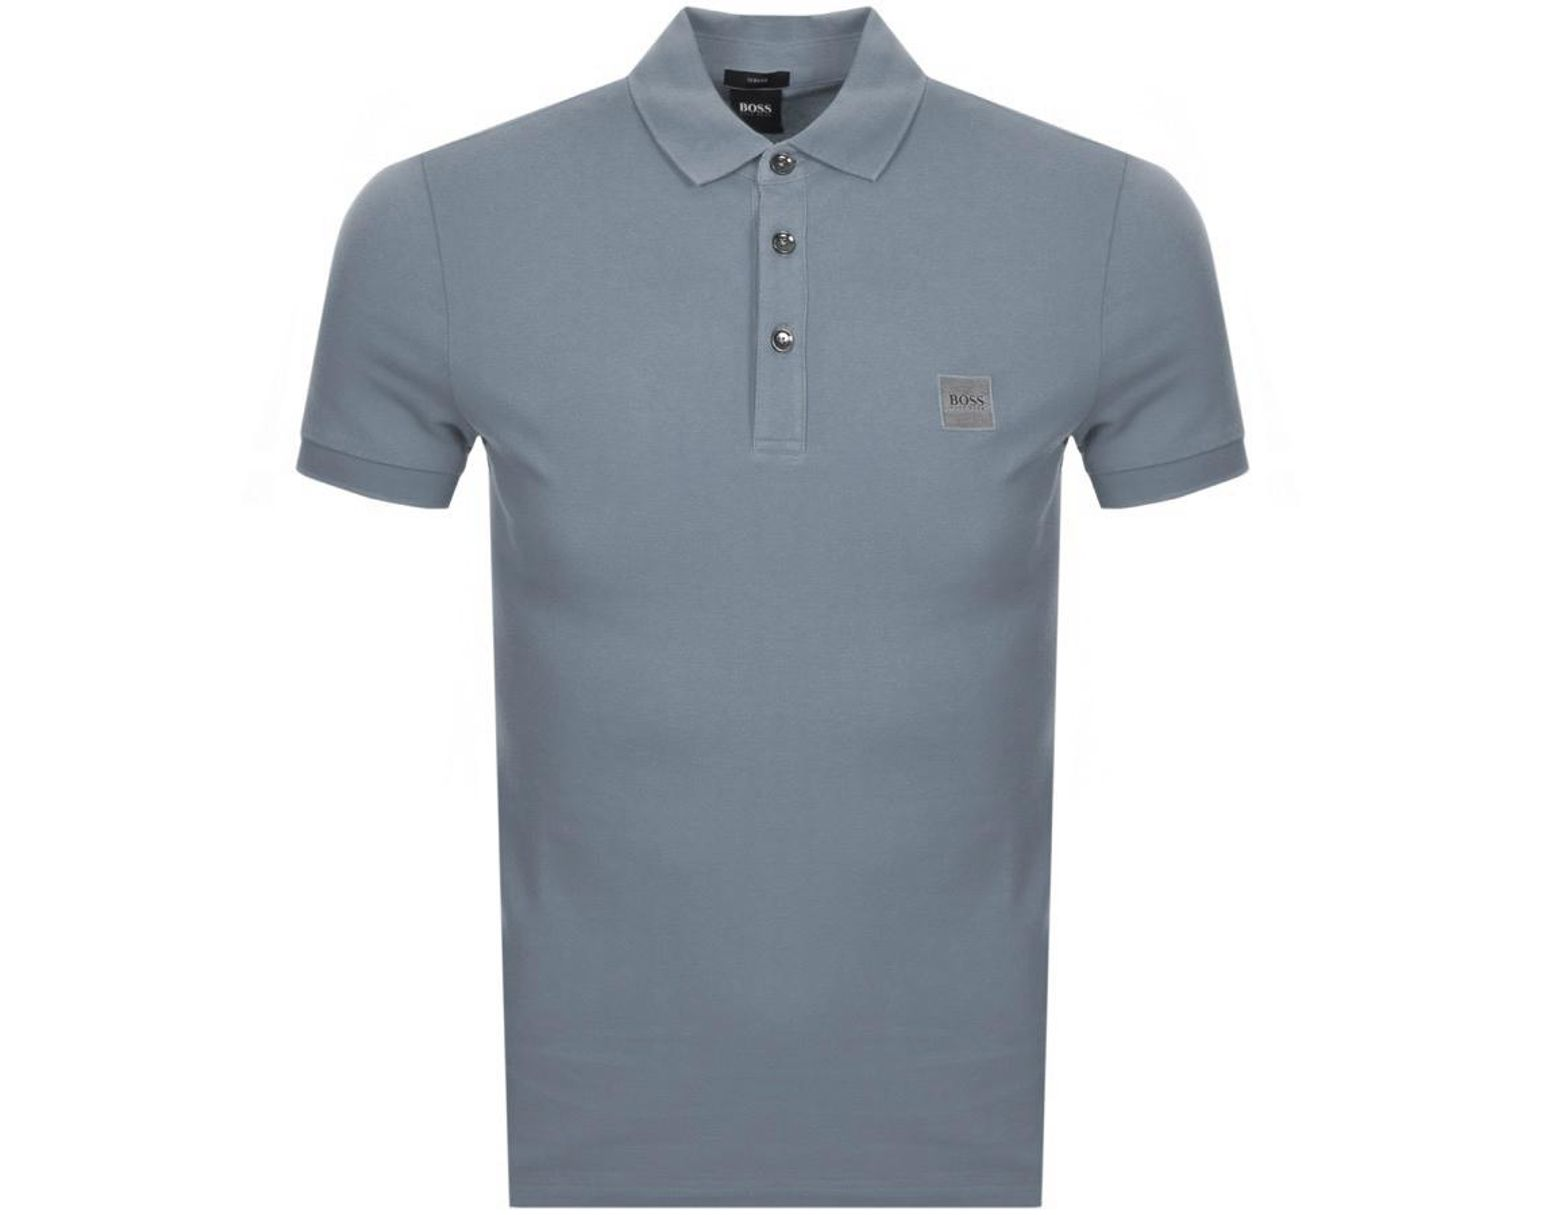 6dfe75d62 BOSS by Hugo Boss Passenger Polo T Shirt Grey in Gray for Men - Lyst